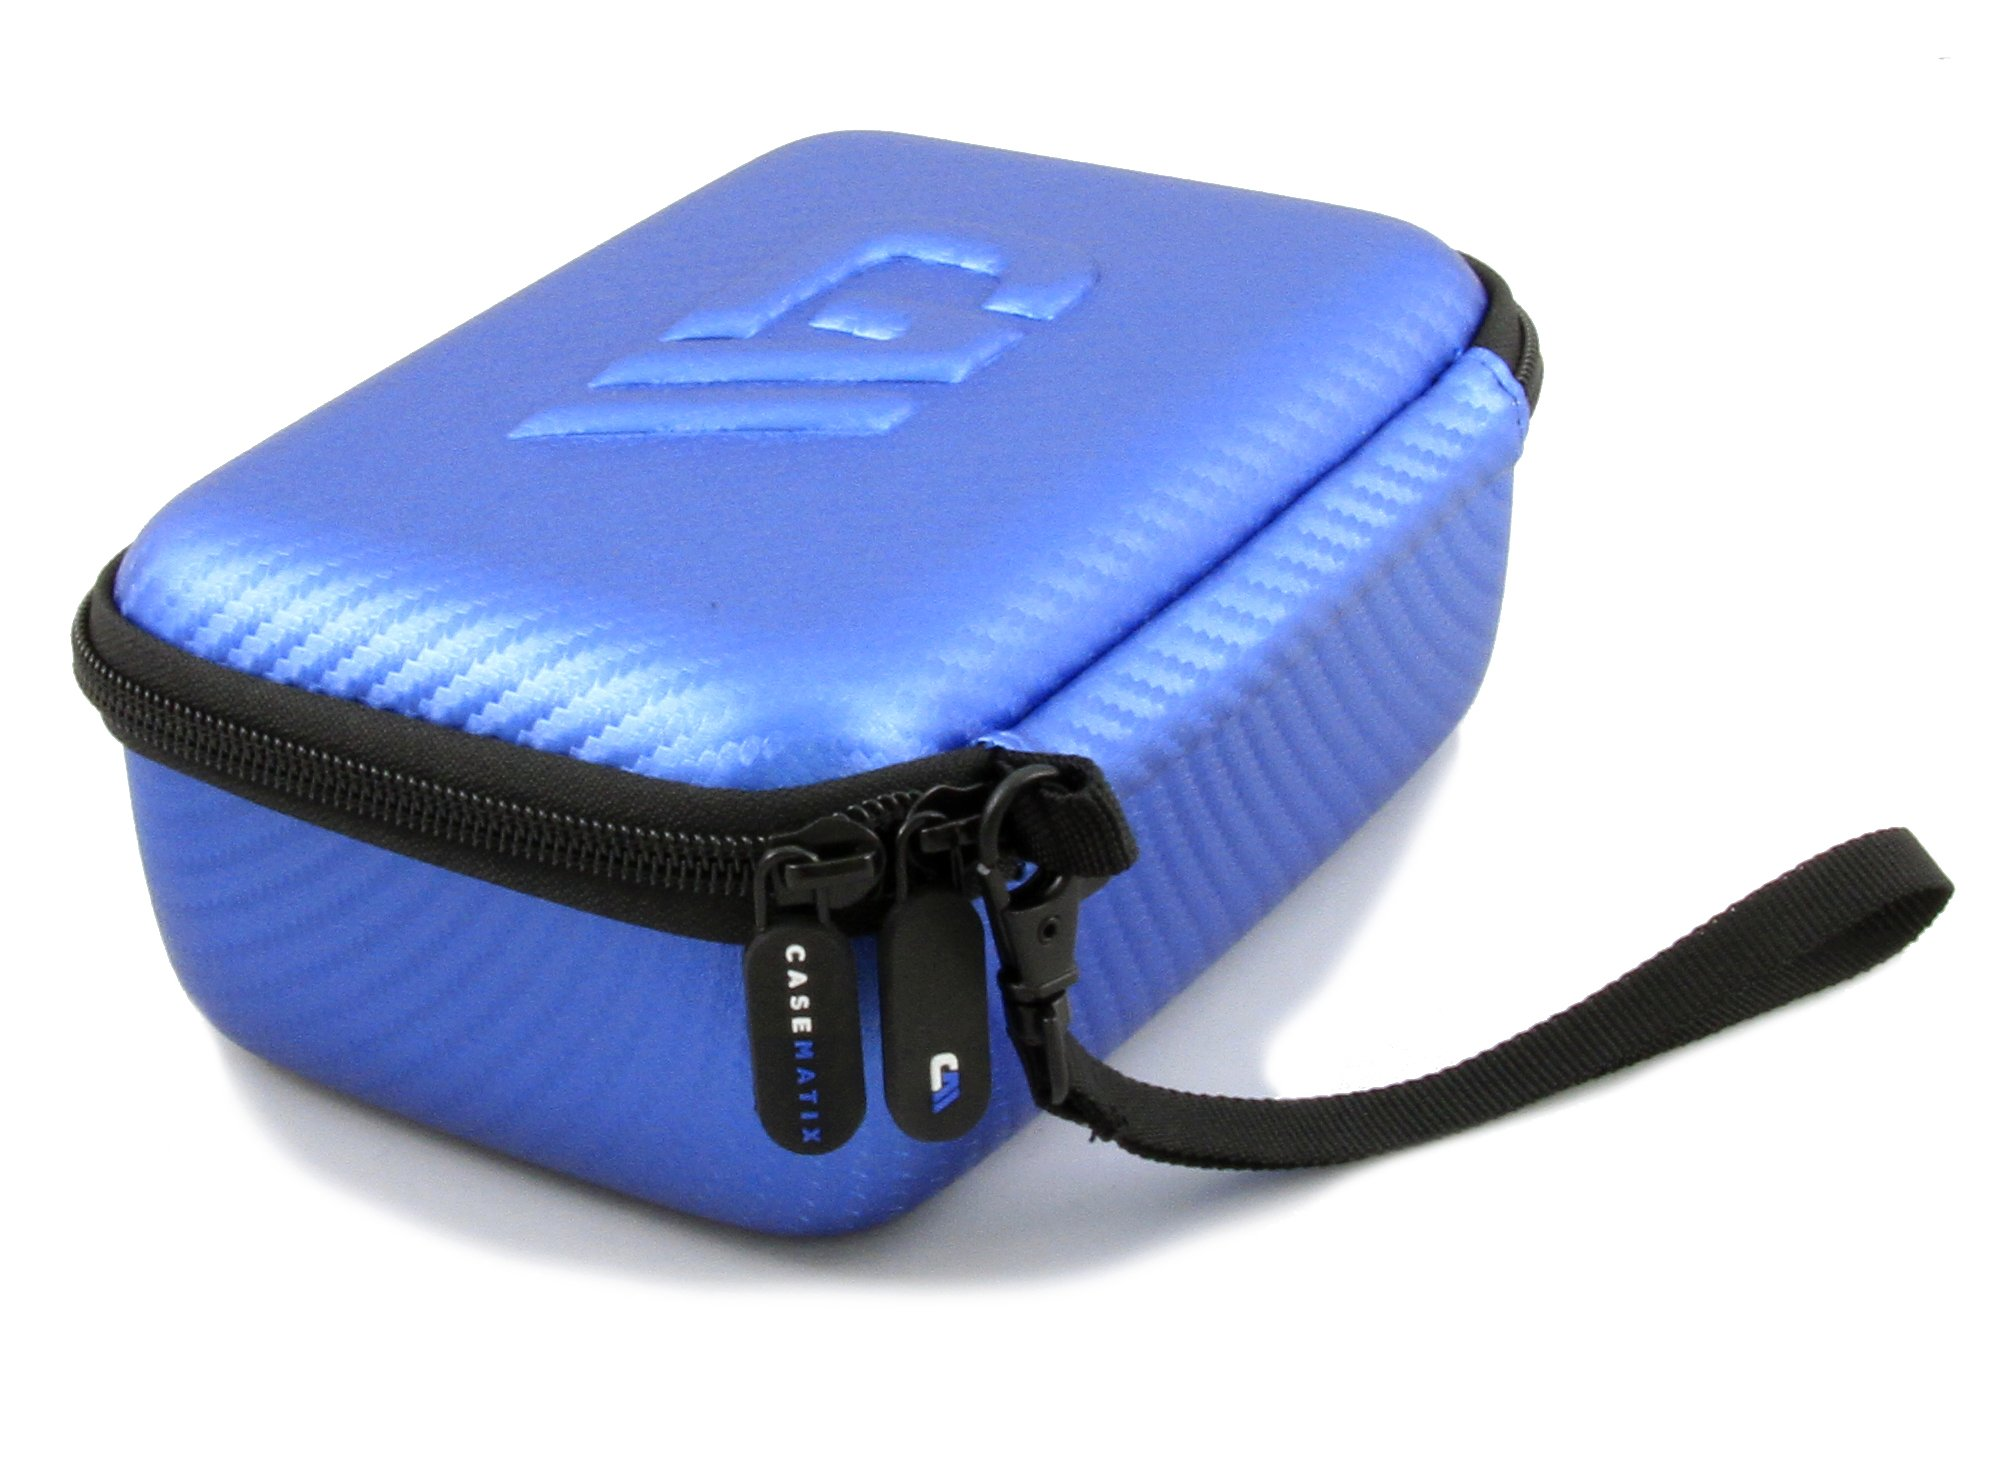 CASEMATIX Blue Toy Case Compatible with Boxer Interactive A.I. Robot - Includes Toy Box and Felt Bag to Hold Game Activating Feature Cards by CASEMATIX (Image #3)